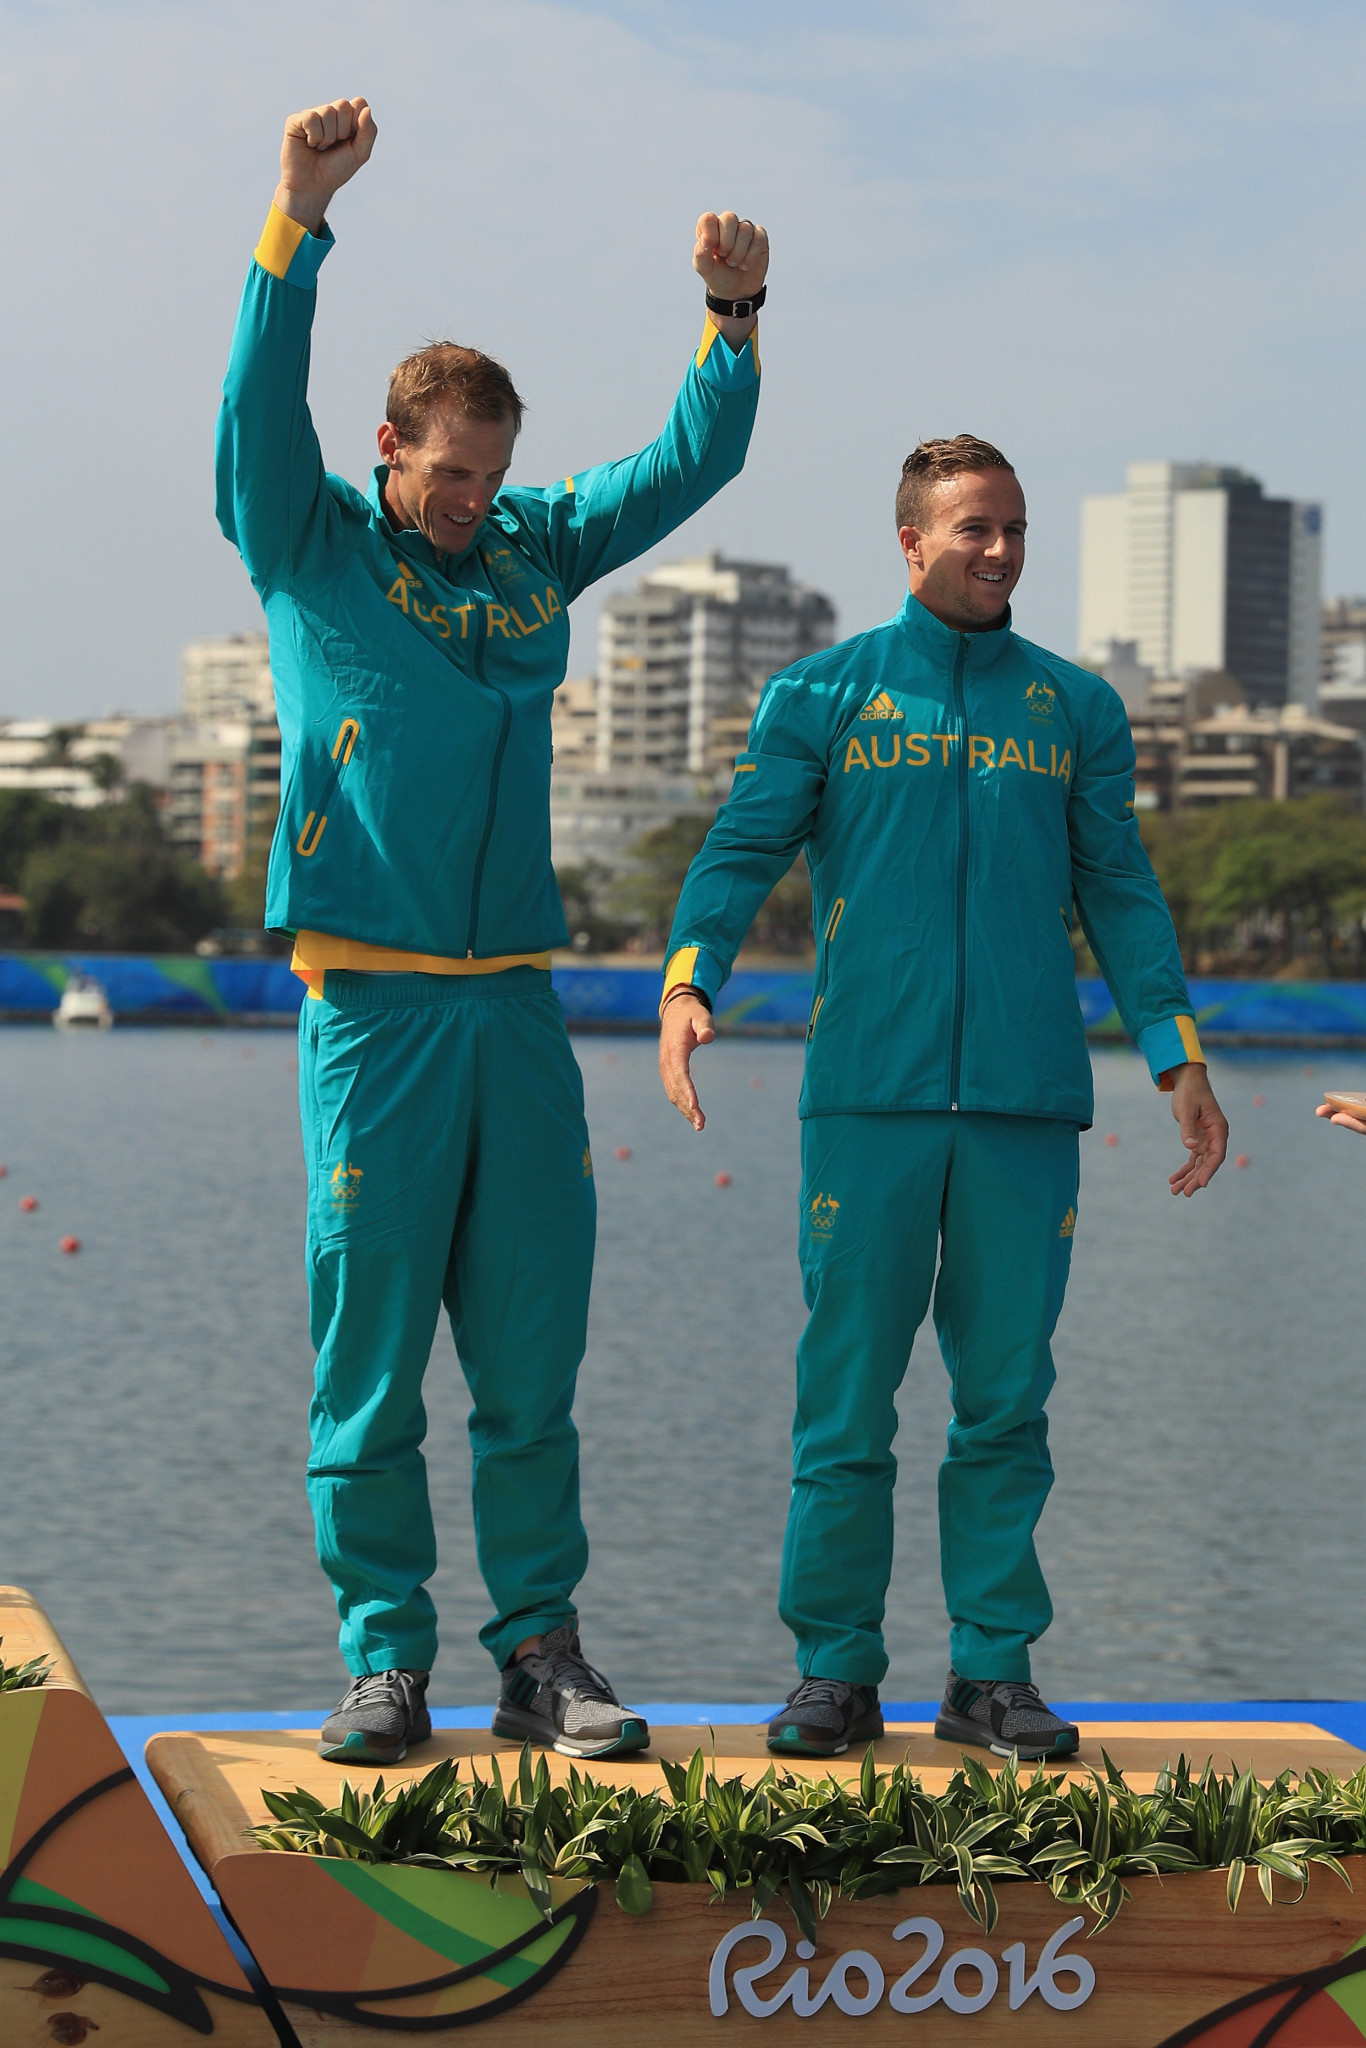 Ken Wallace and Lachlan Tame, right, of Australia won bronze in the men's K2 event at Rio 2016 ©Getty Images